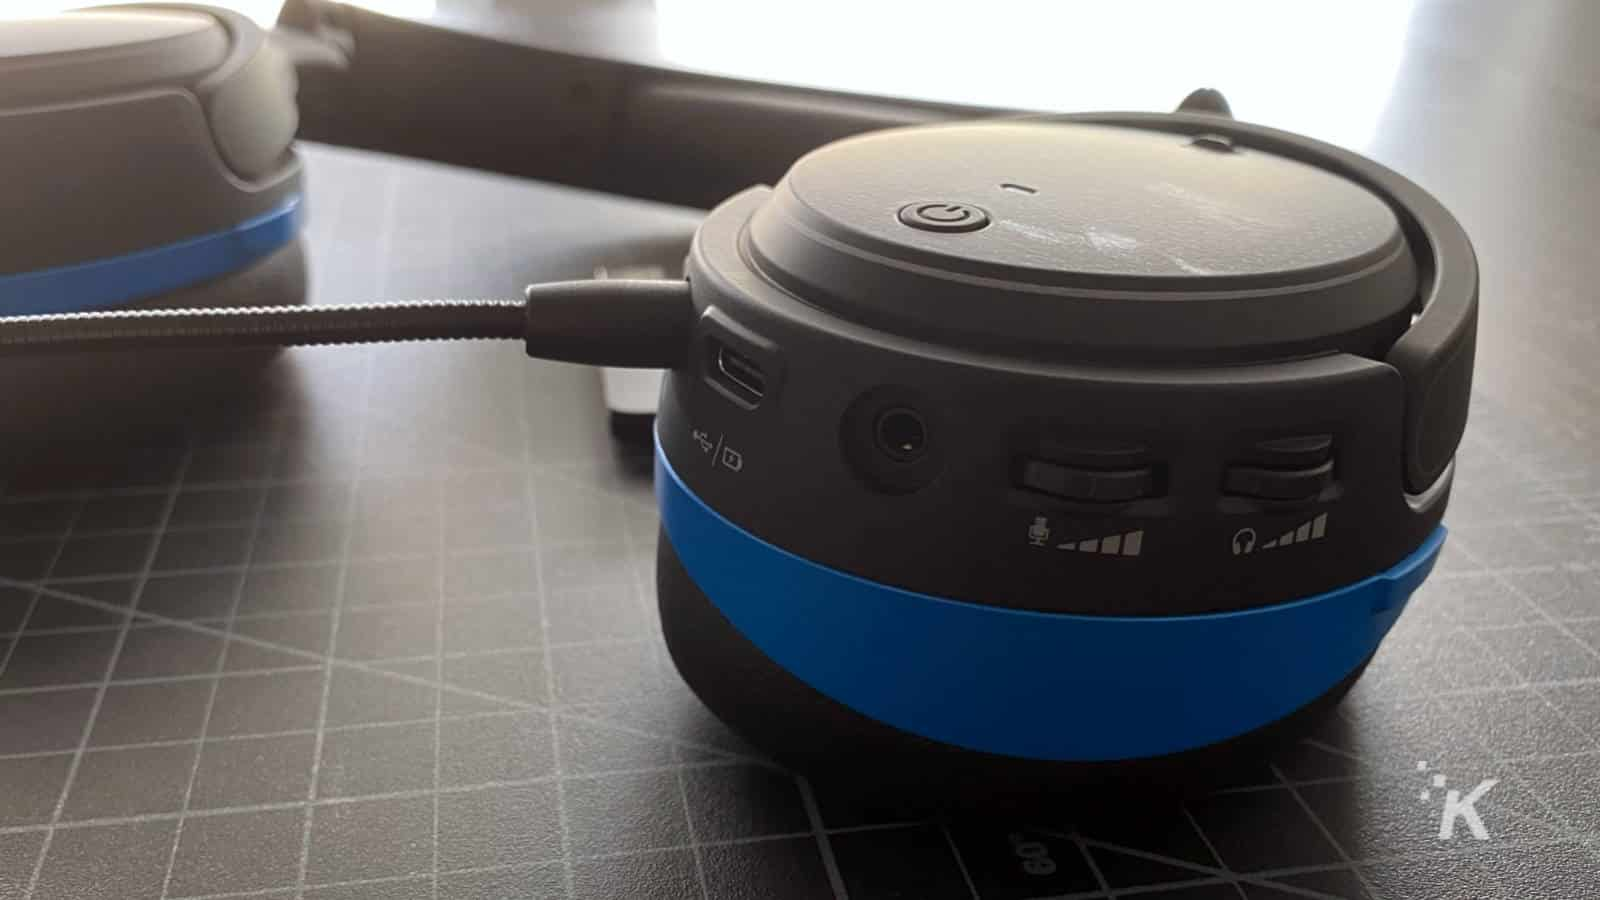 audeze penrose gaming headphones showing controls on earcup